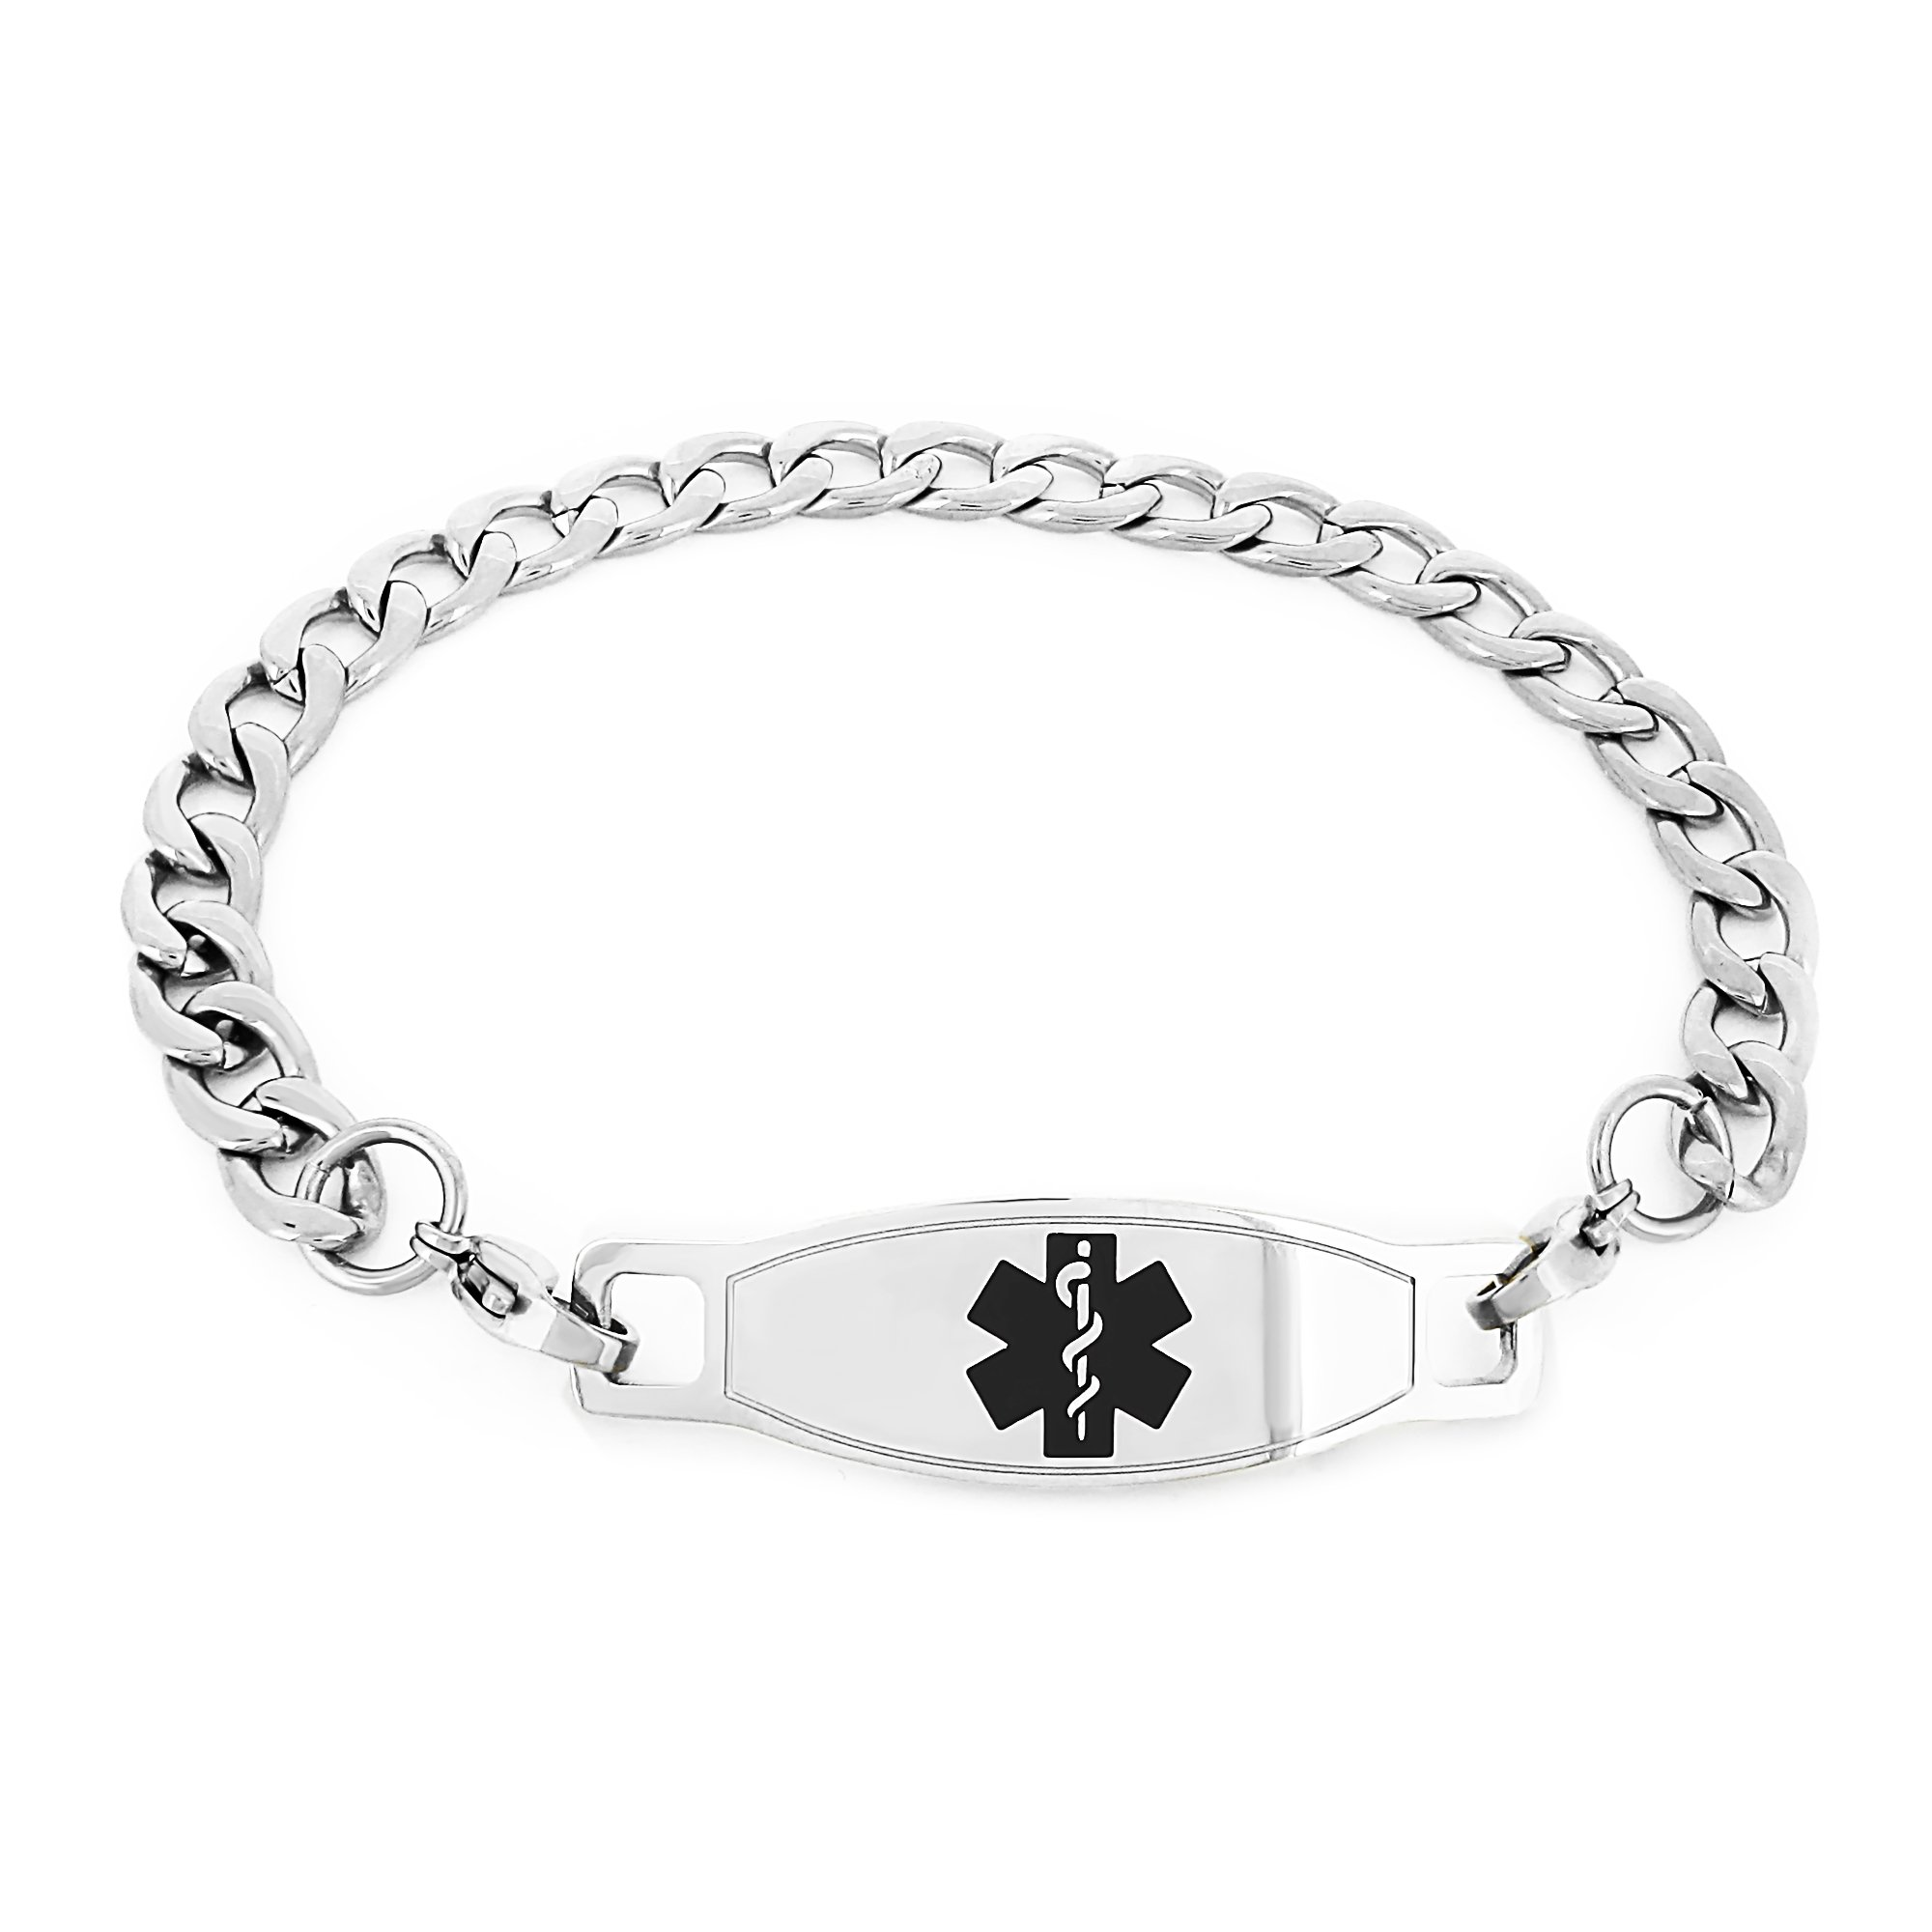 fundraising shop group awareness admission bracelet australia cjd network love charm star support img